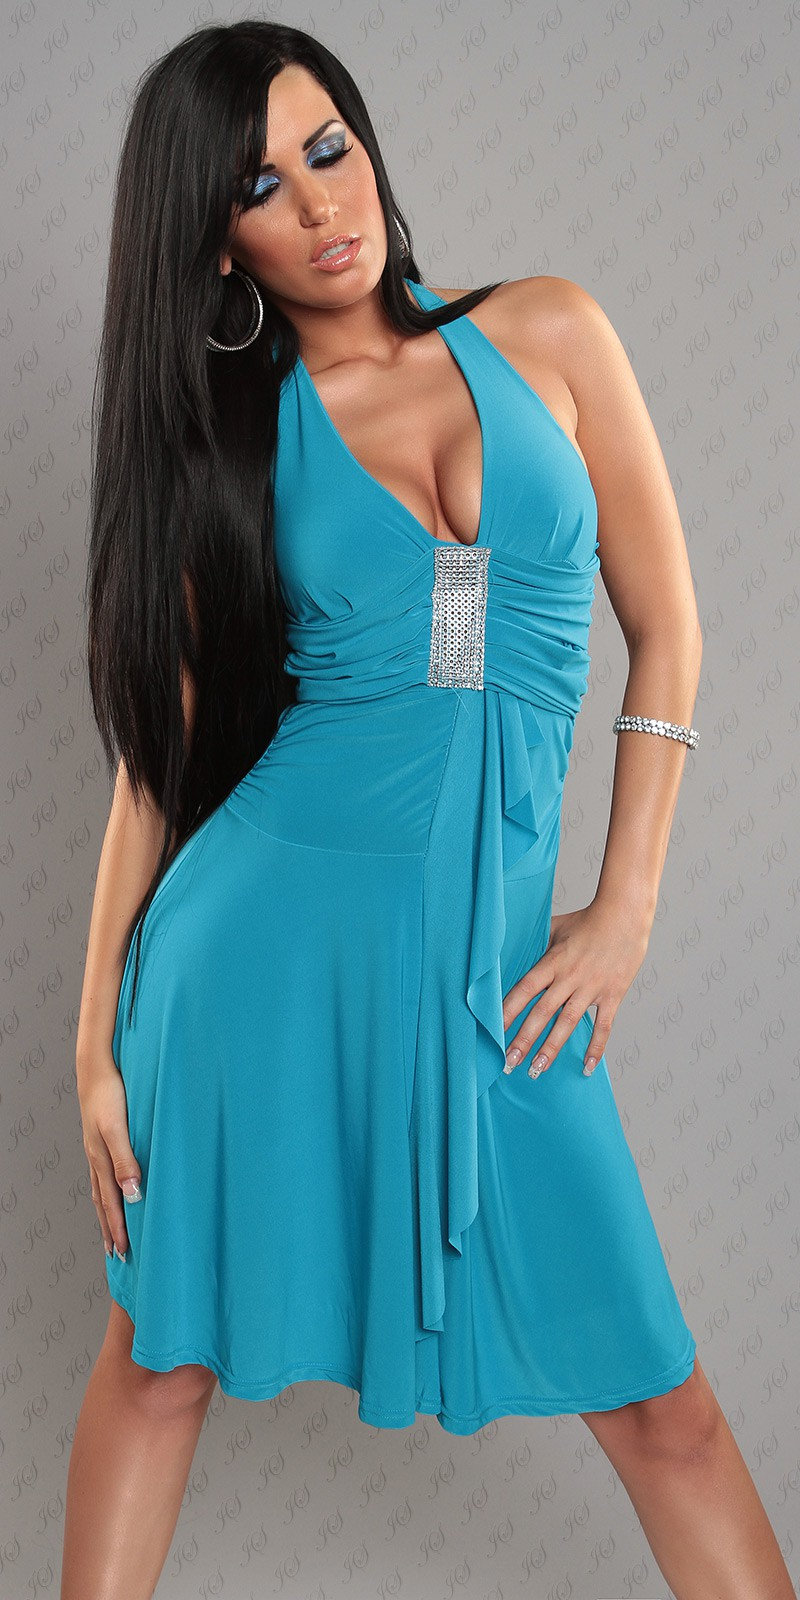 Blue Halter Rhinestone Accent Evening Dress